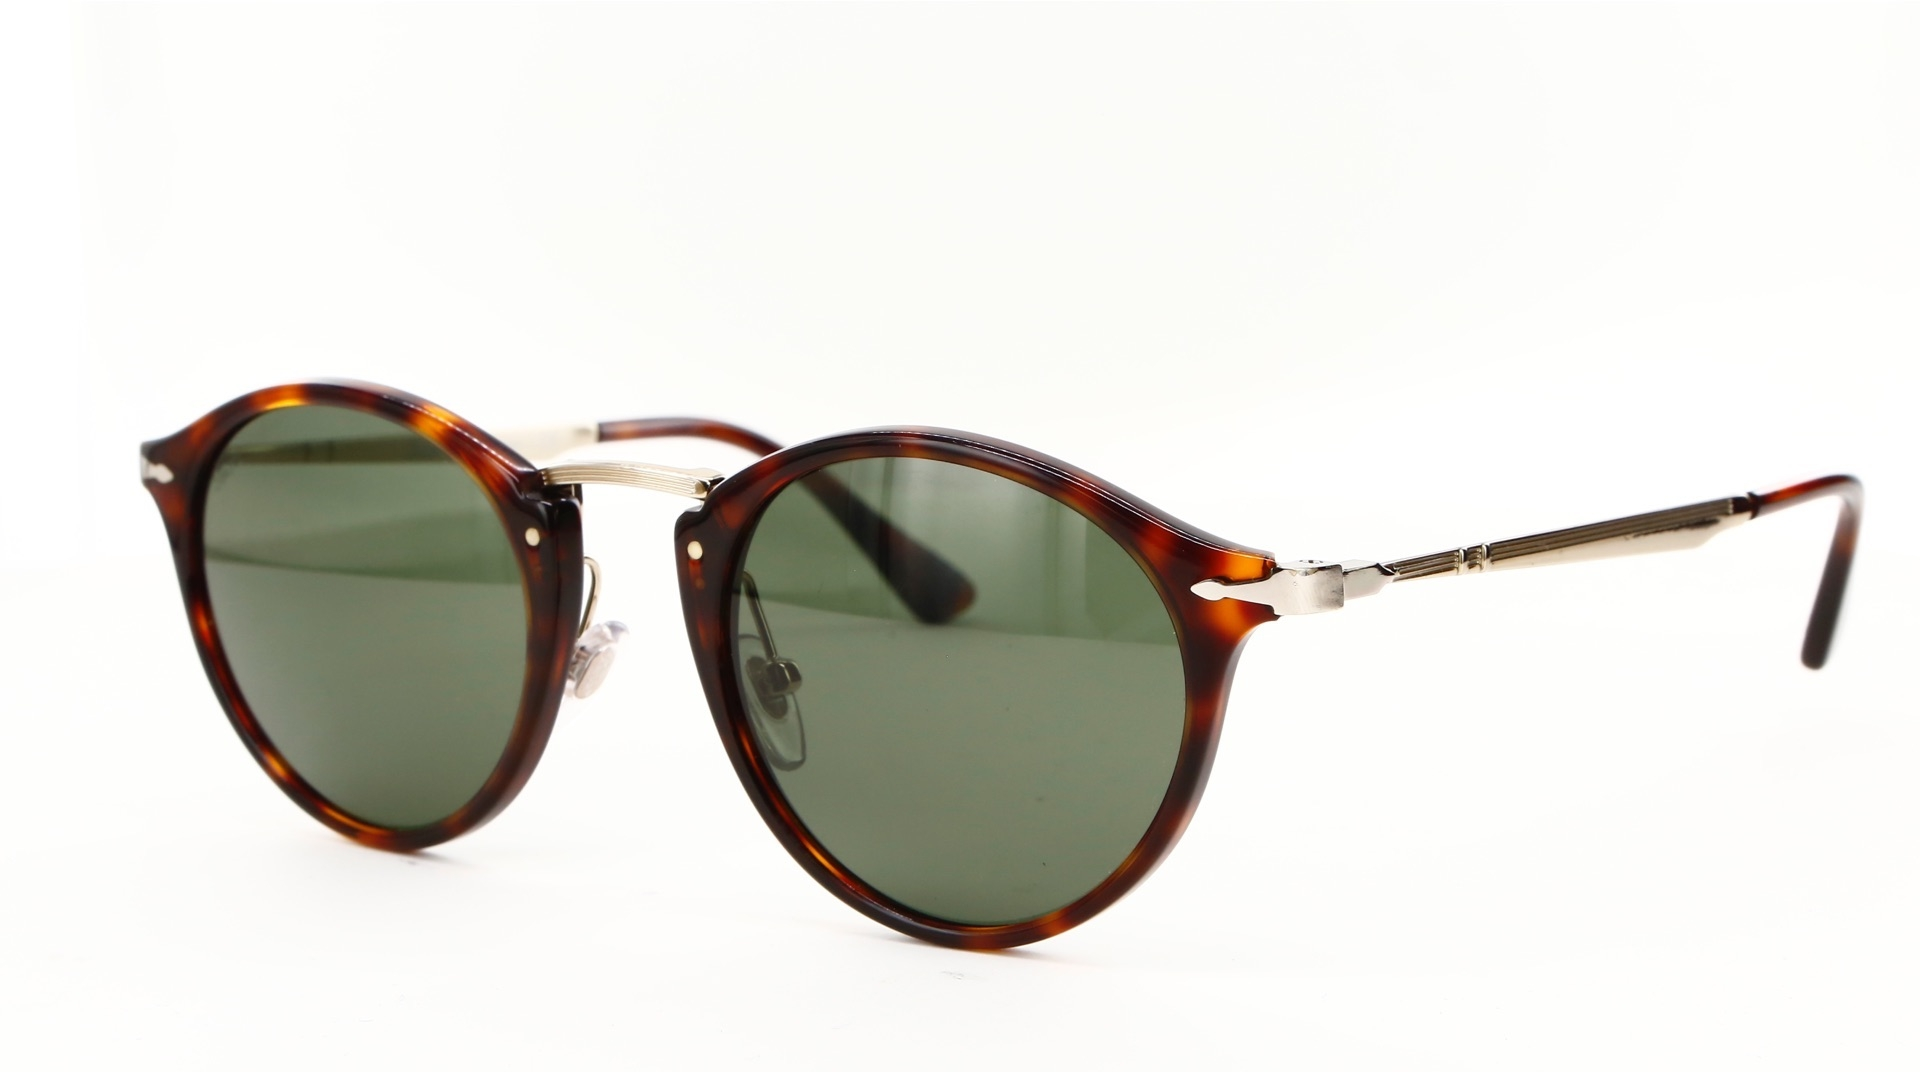 Persol - ref: 79272